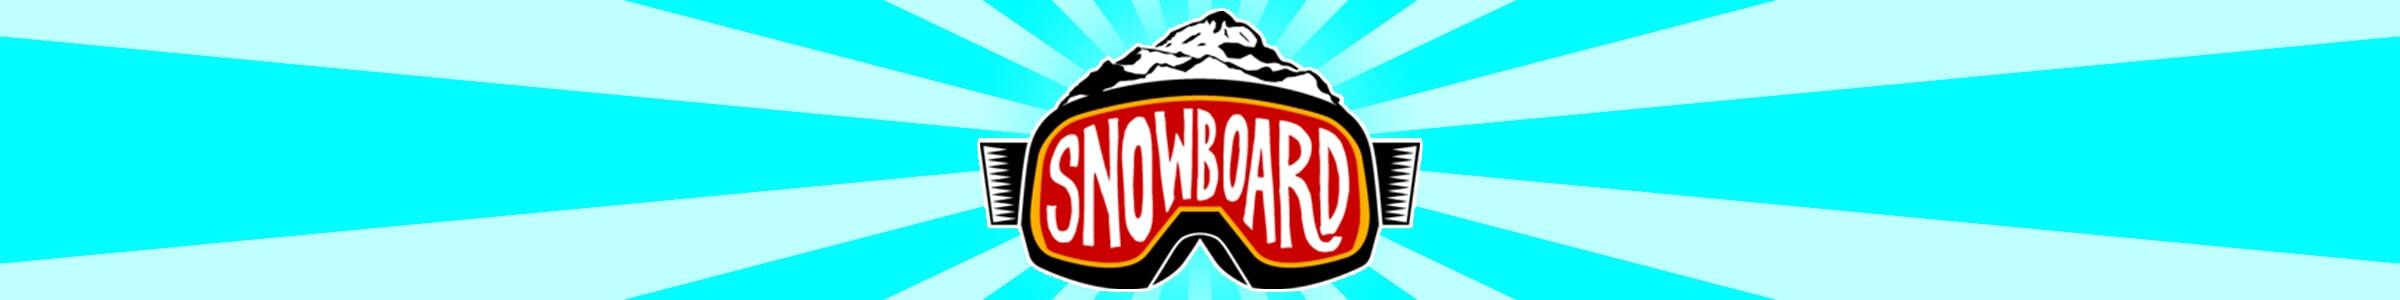 Category_Teaser_Header_Snowboard_2400x300